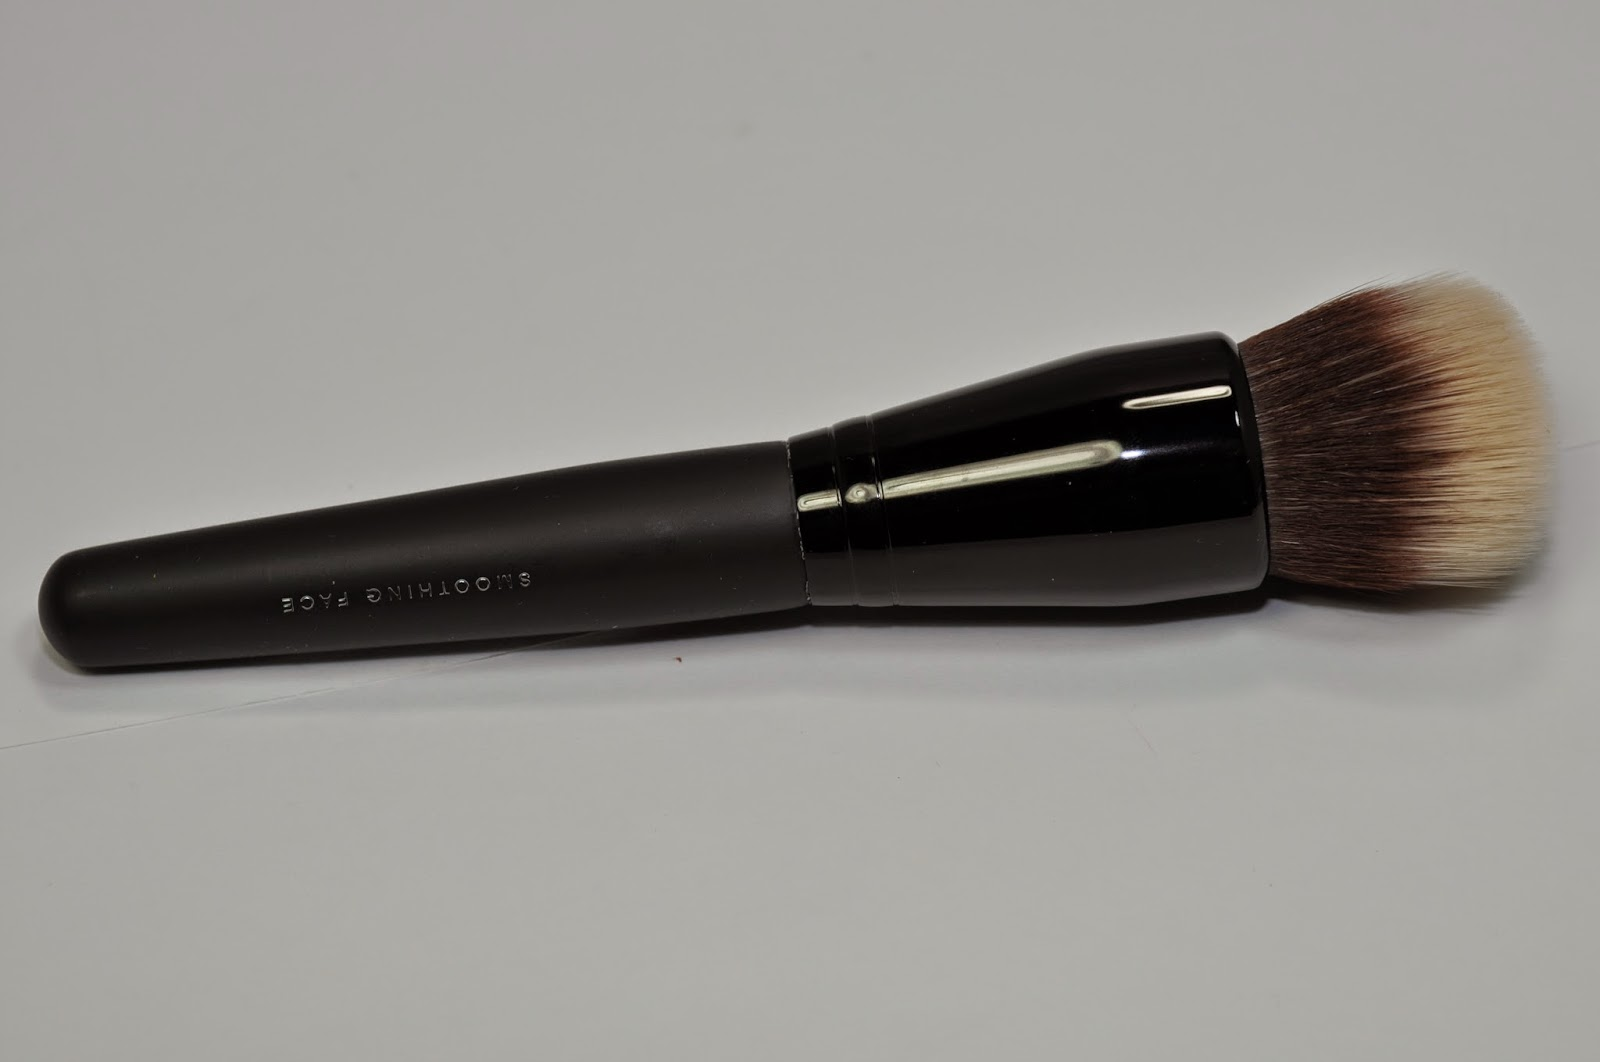 Toothbrush makeup brushes mac